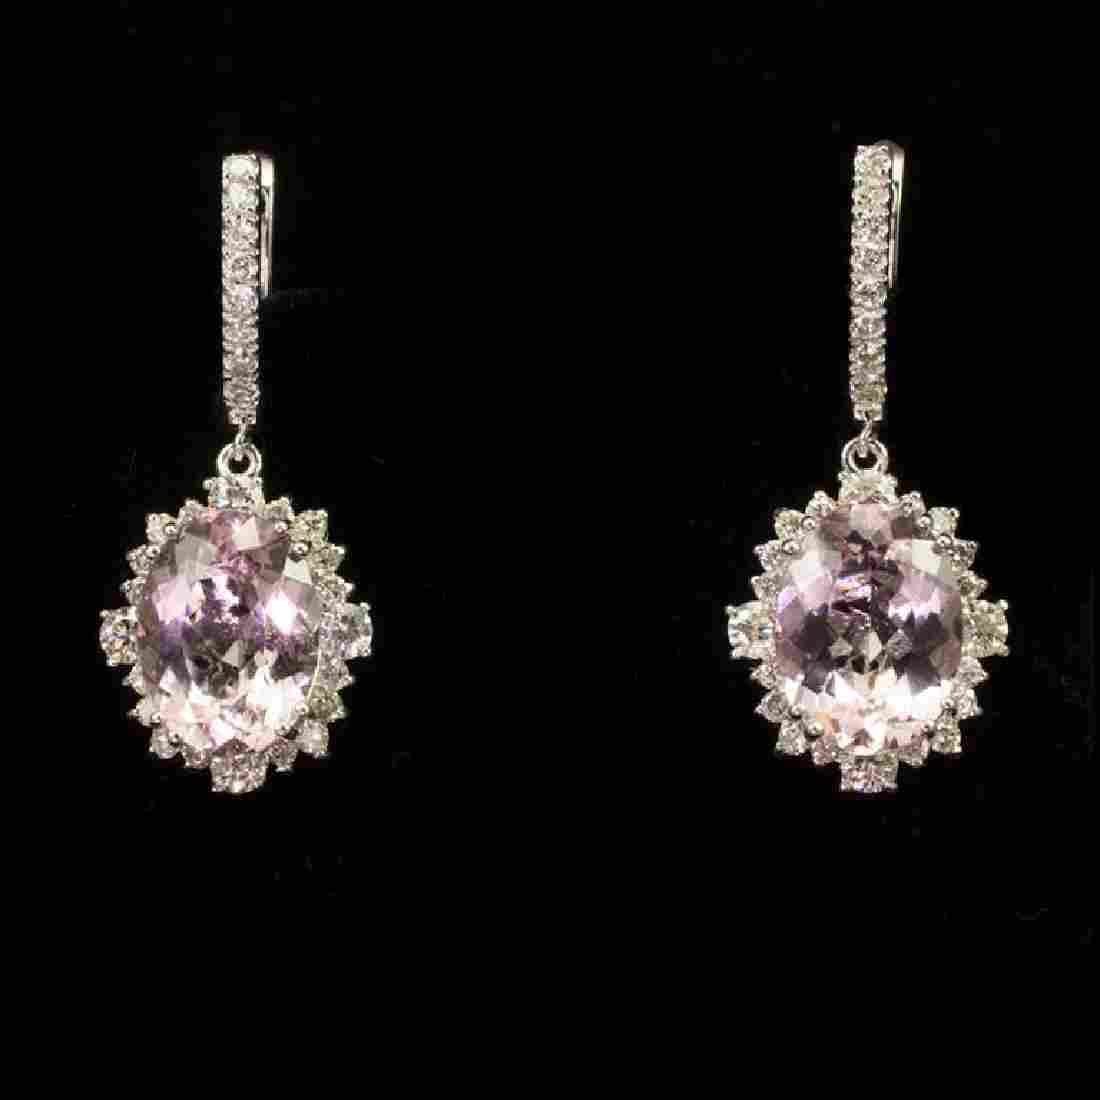 14K Gold 8.95ct Morganite 2.65ct Diamond Earrings